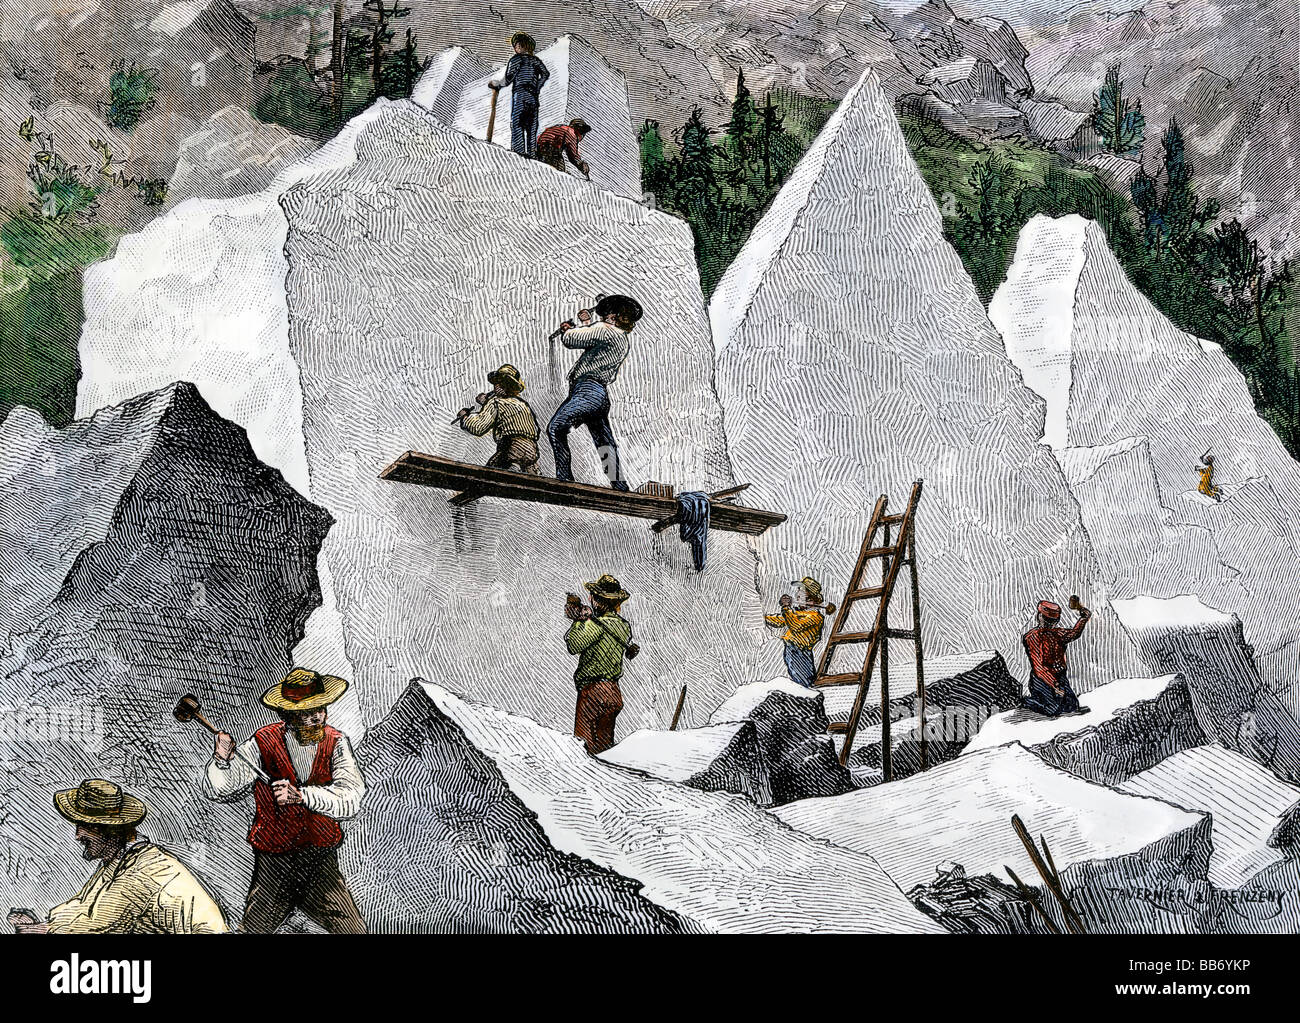 Quarrying stone for the Mormon Tabernacle in Salt Lake City Utah 1870s. Hand-colored woodcut - Stock Image